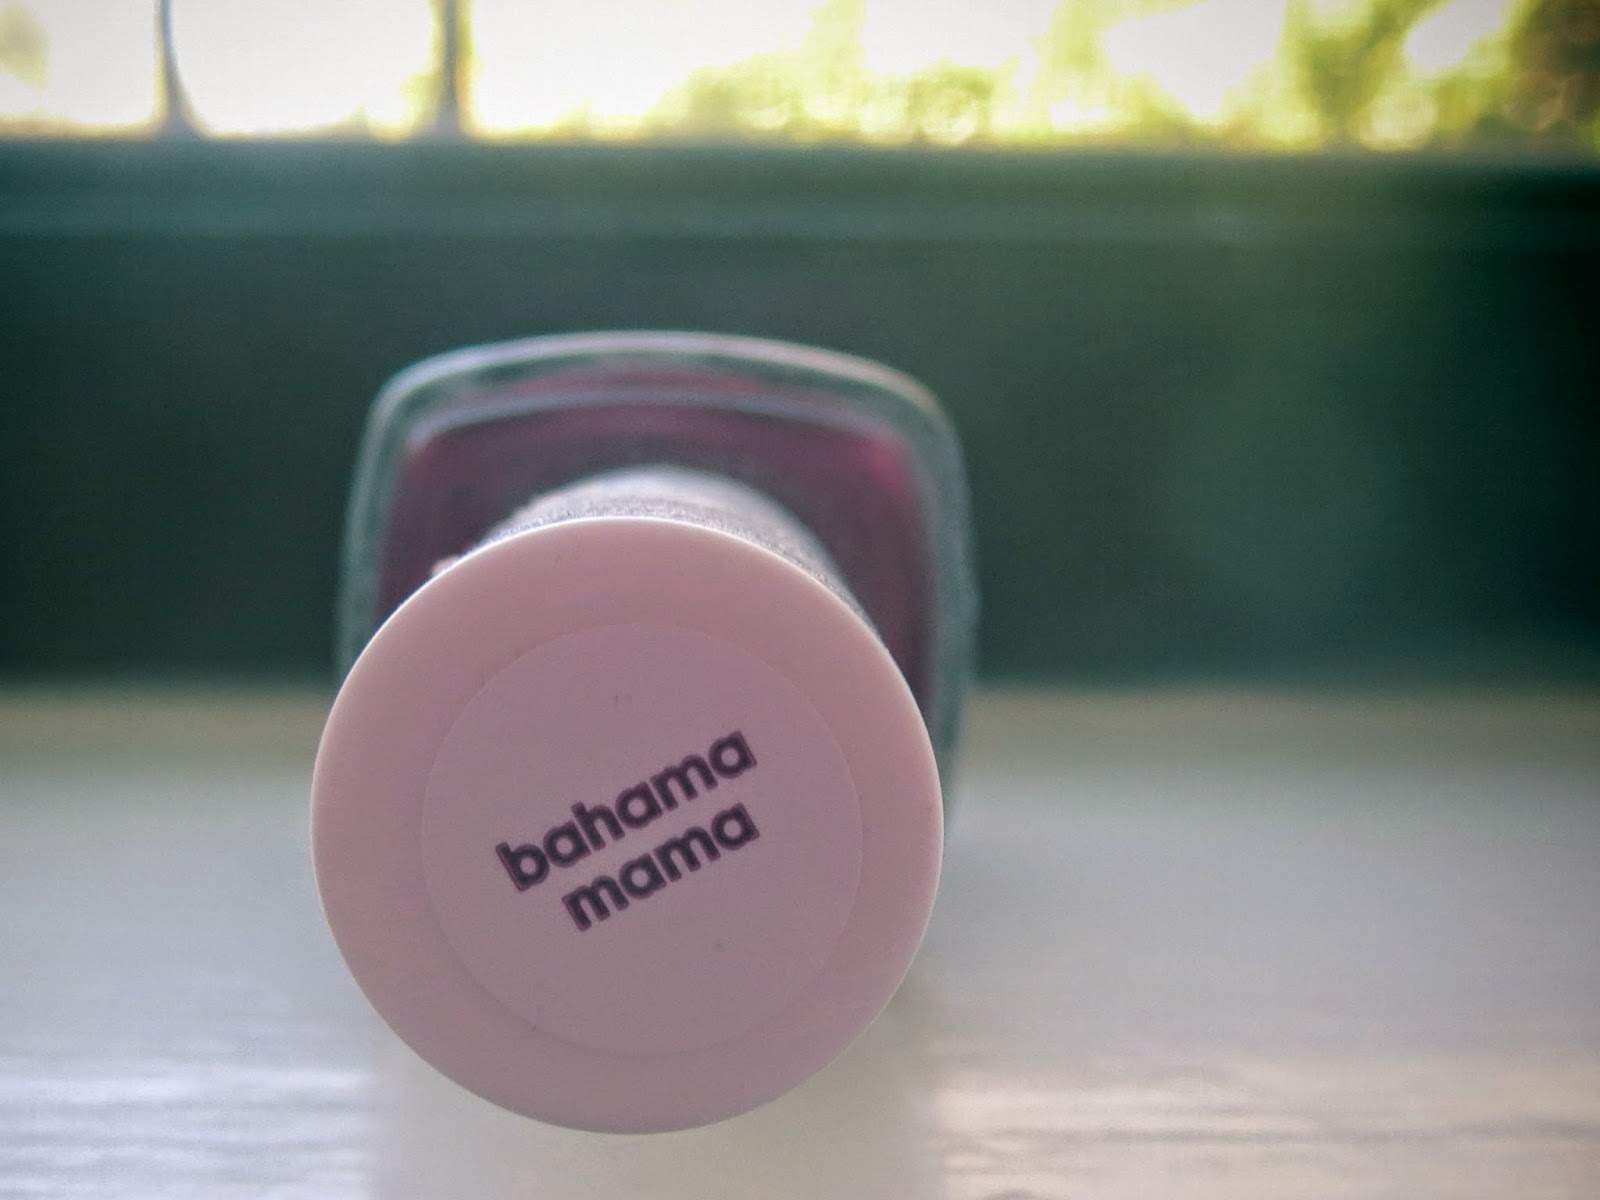 A picture of Essie's Bahama Mama